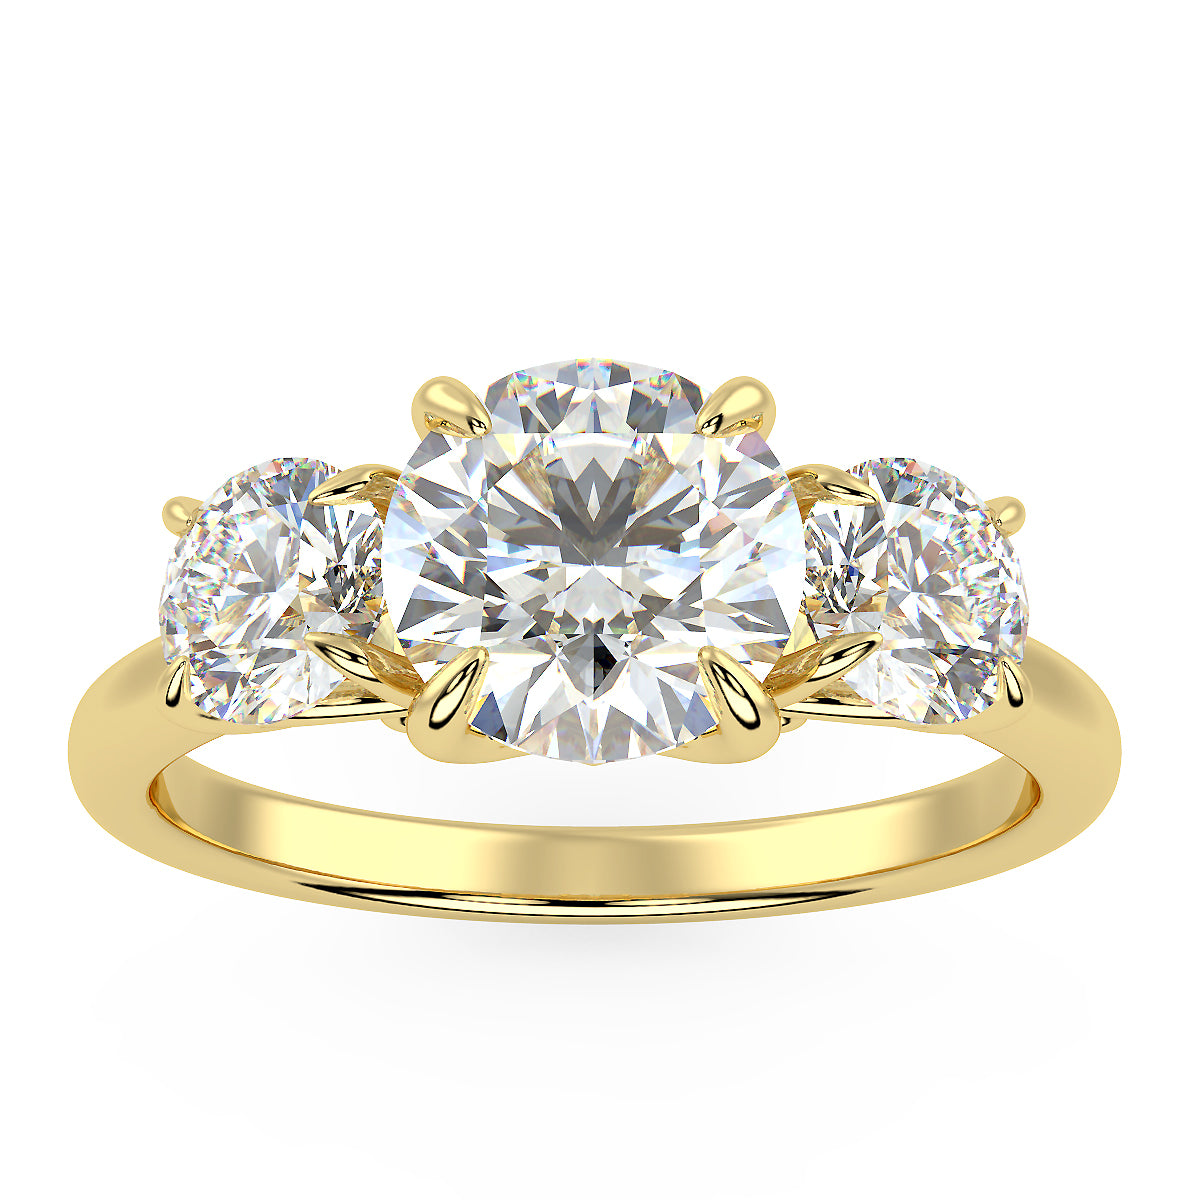 Centauri Three-Stone Ring in Yellow Gold